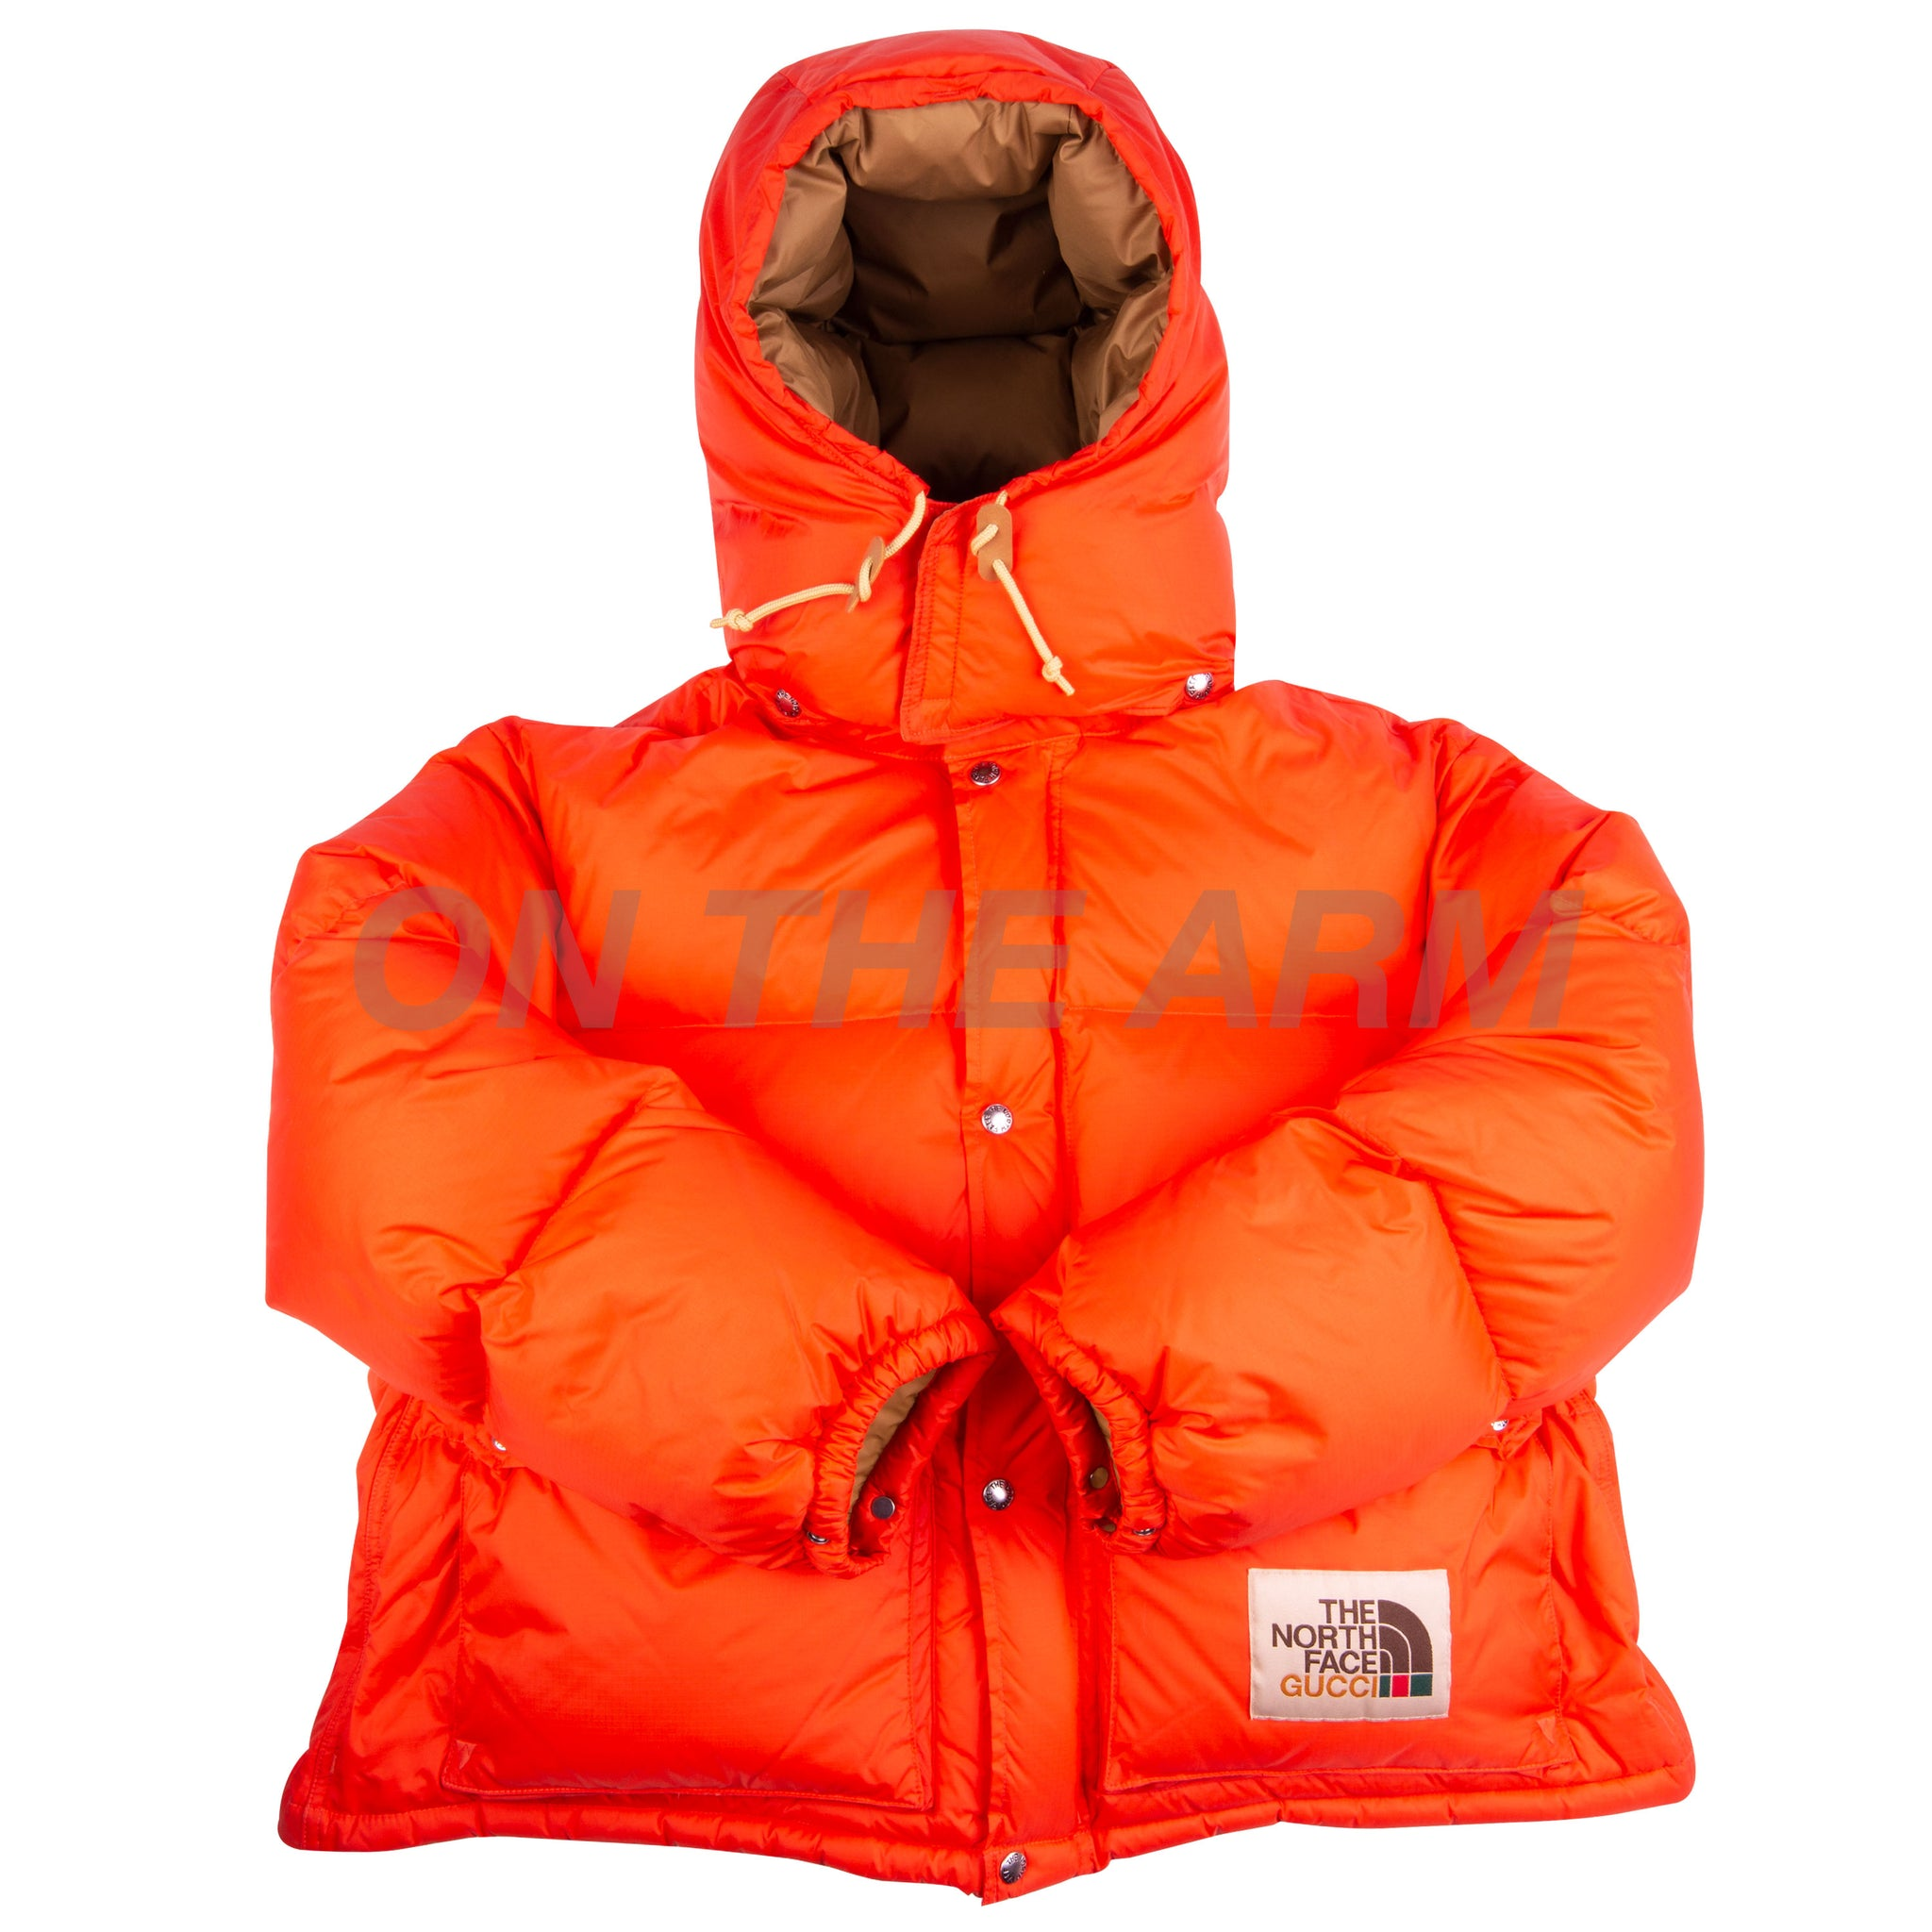 The North Face Orange Gucci Puffer Jacket